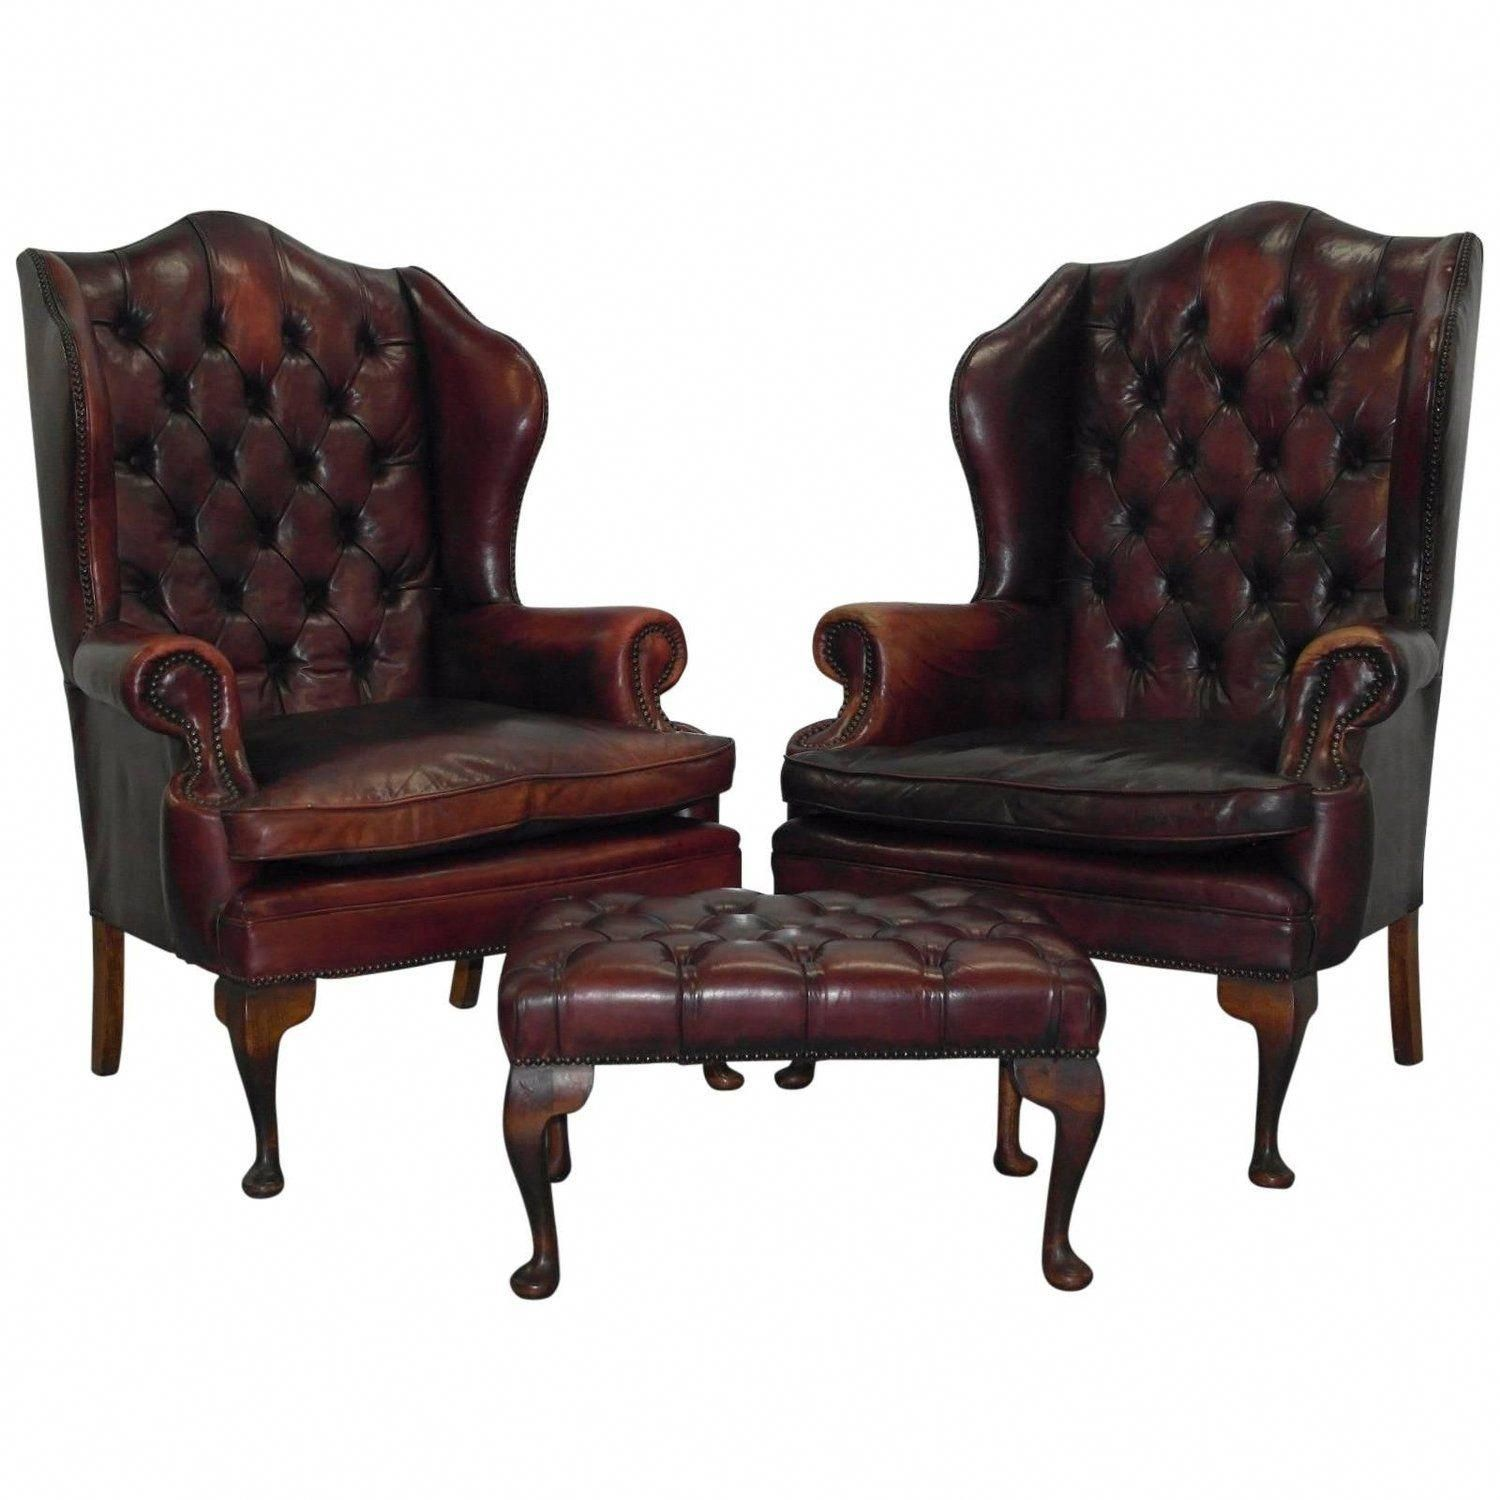 Wingback Chair Wingback chair, Chair, Oversized chair